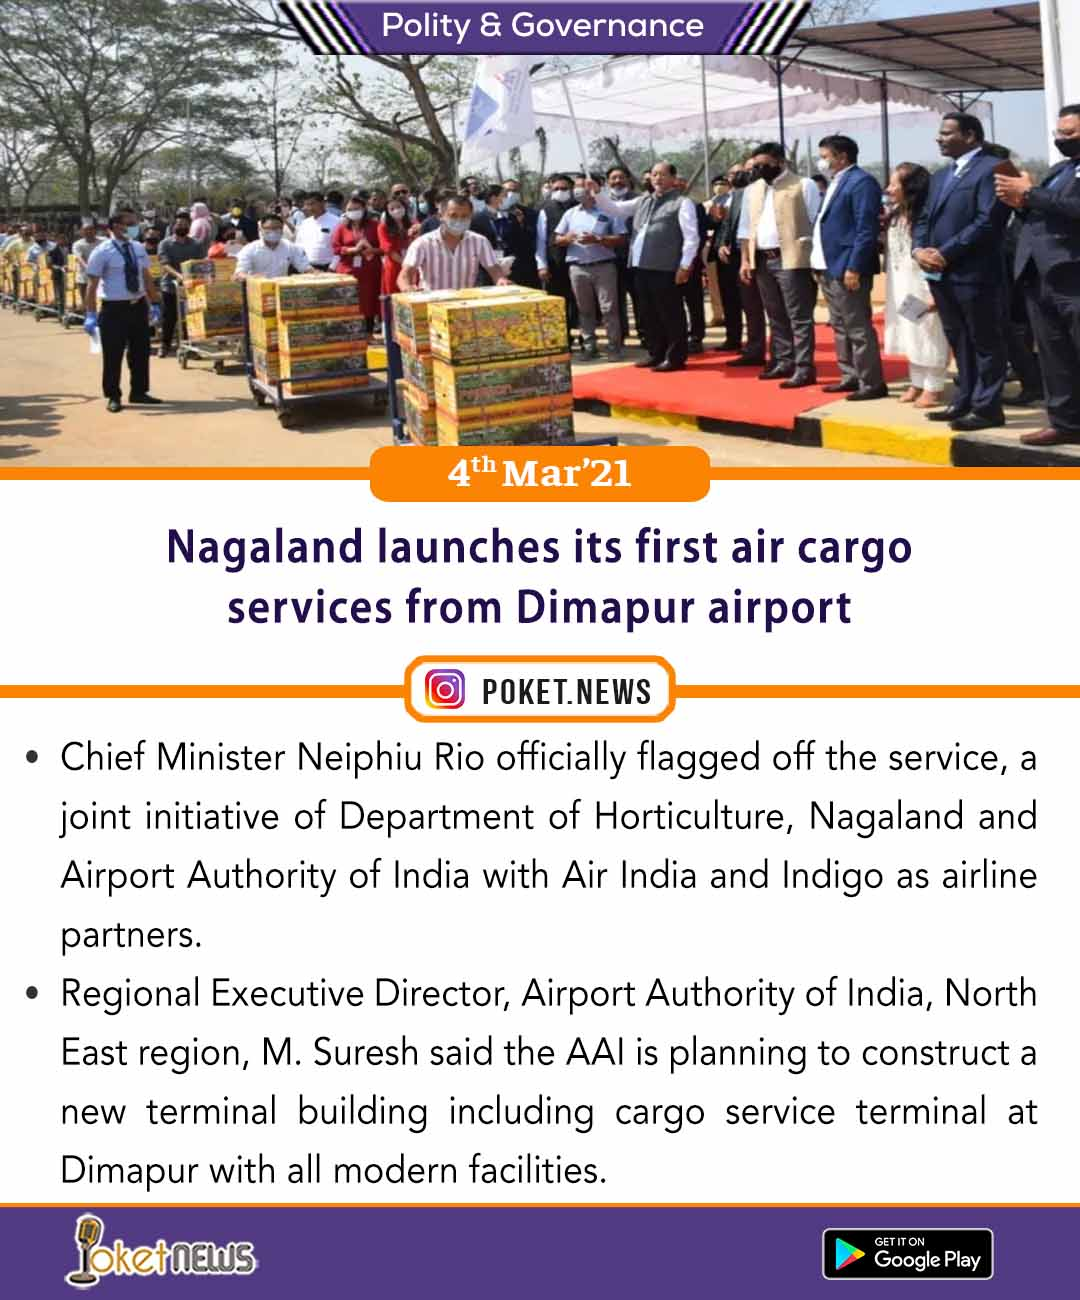 Nagaland launches its first air cargo services from Dimapur airport